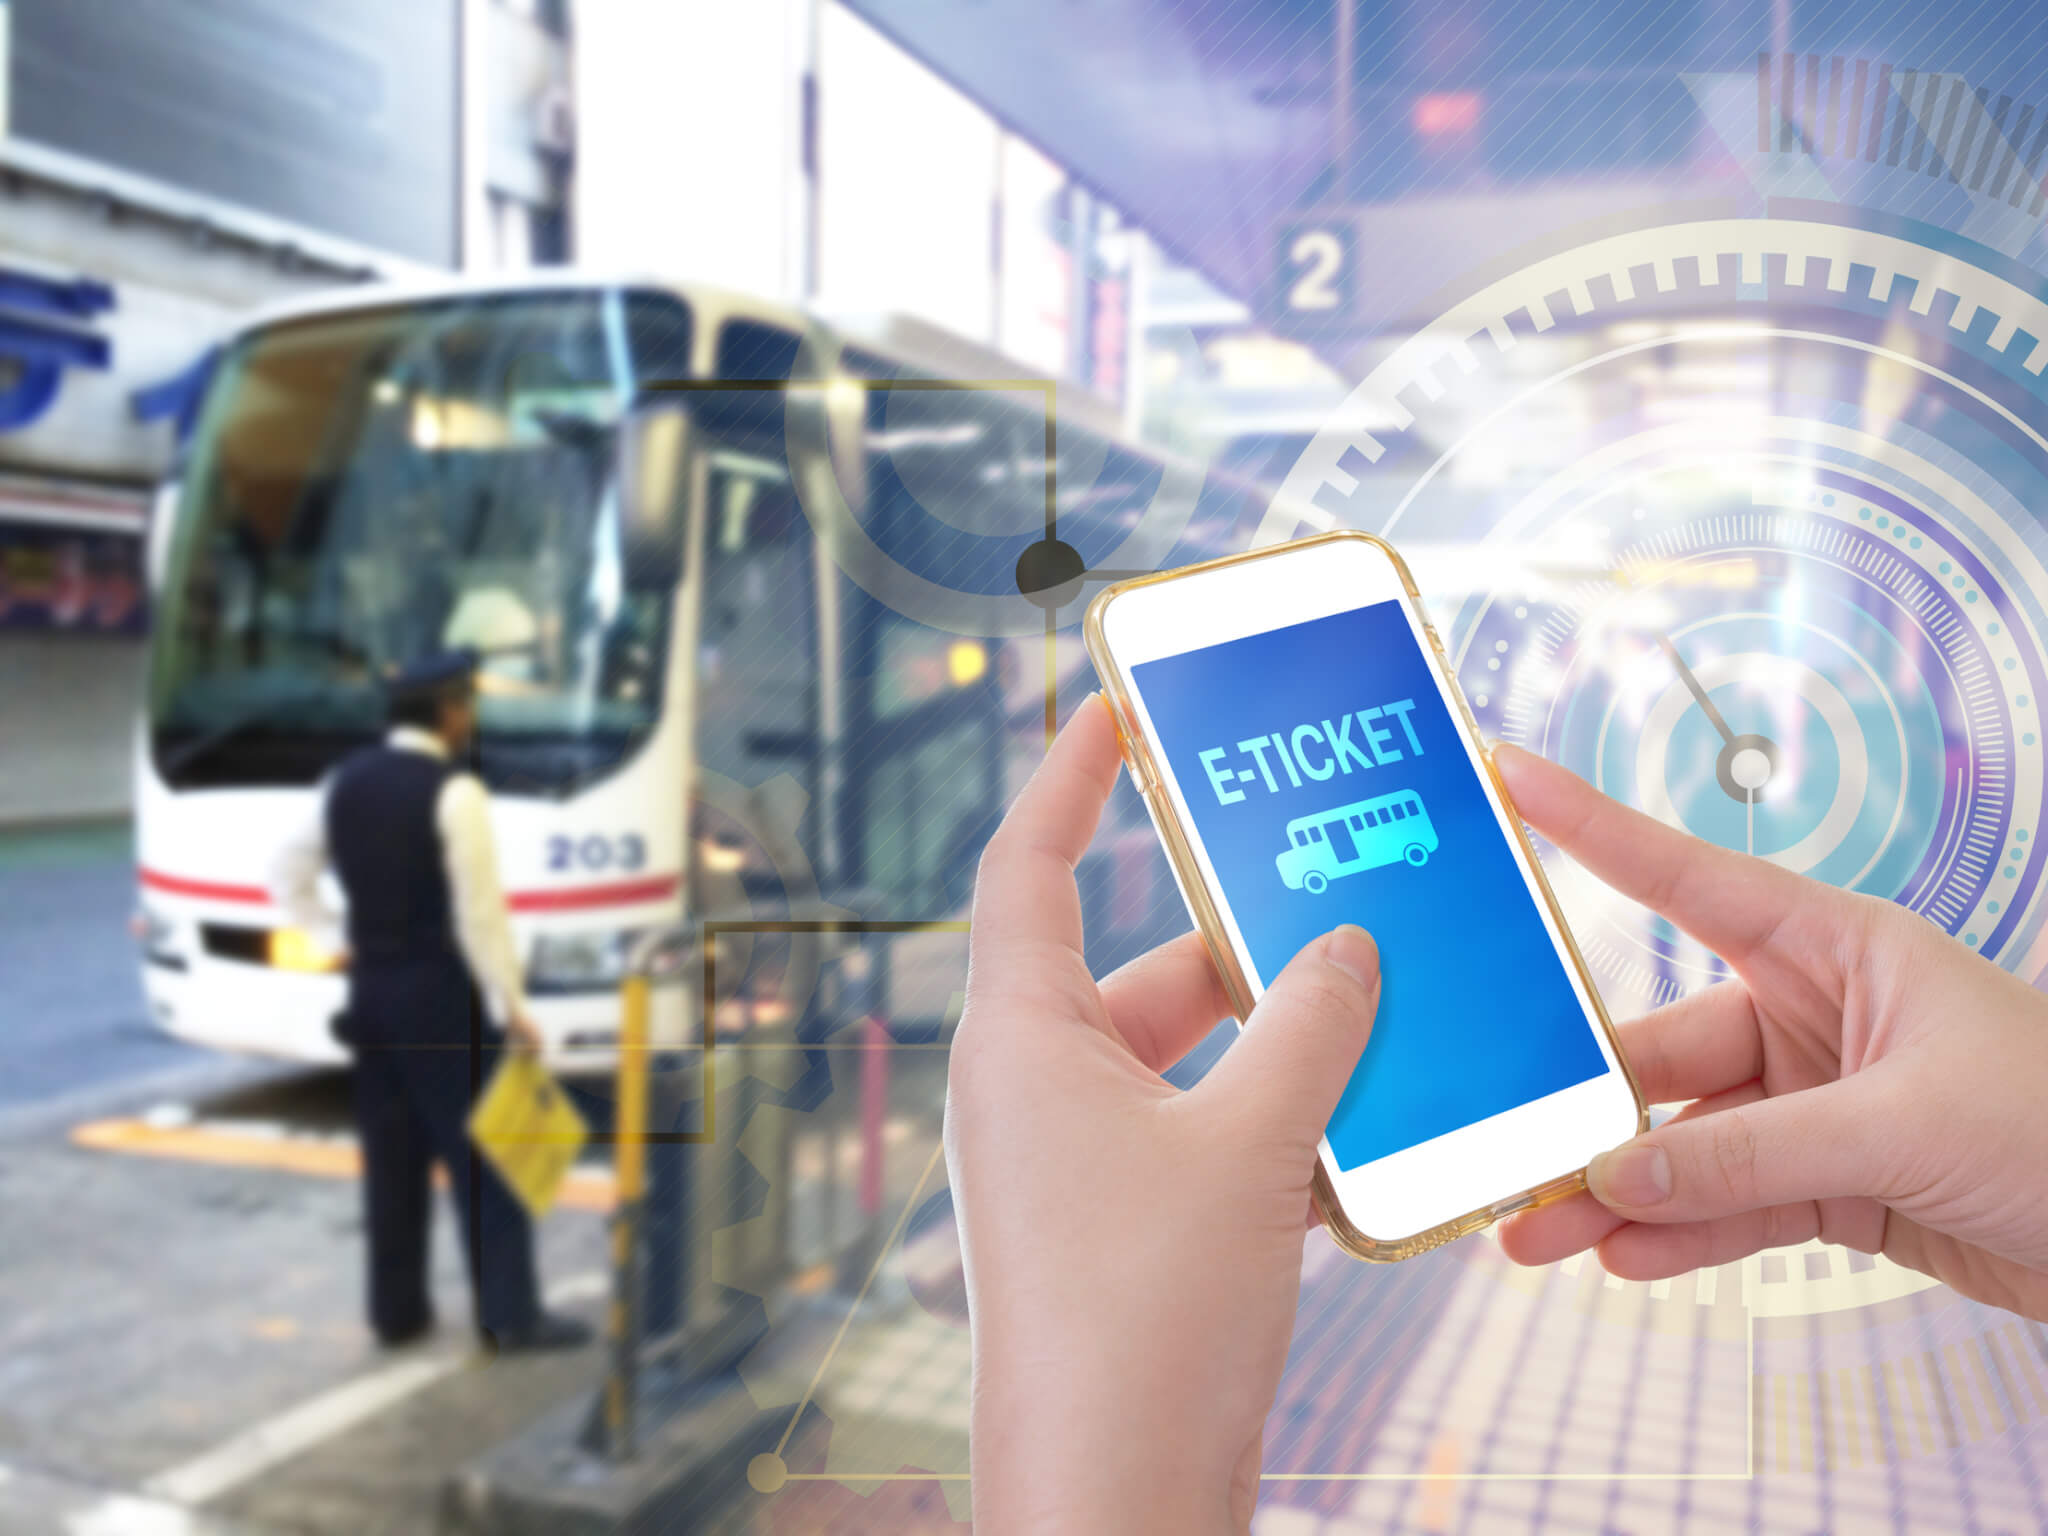 smart ticketing services for transport